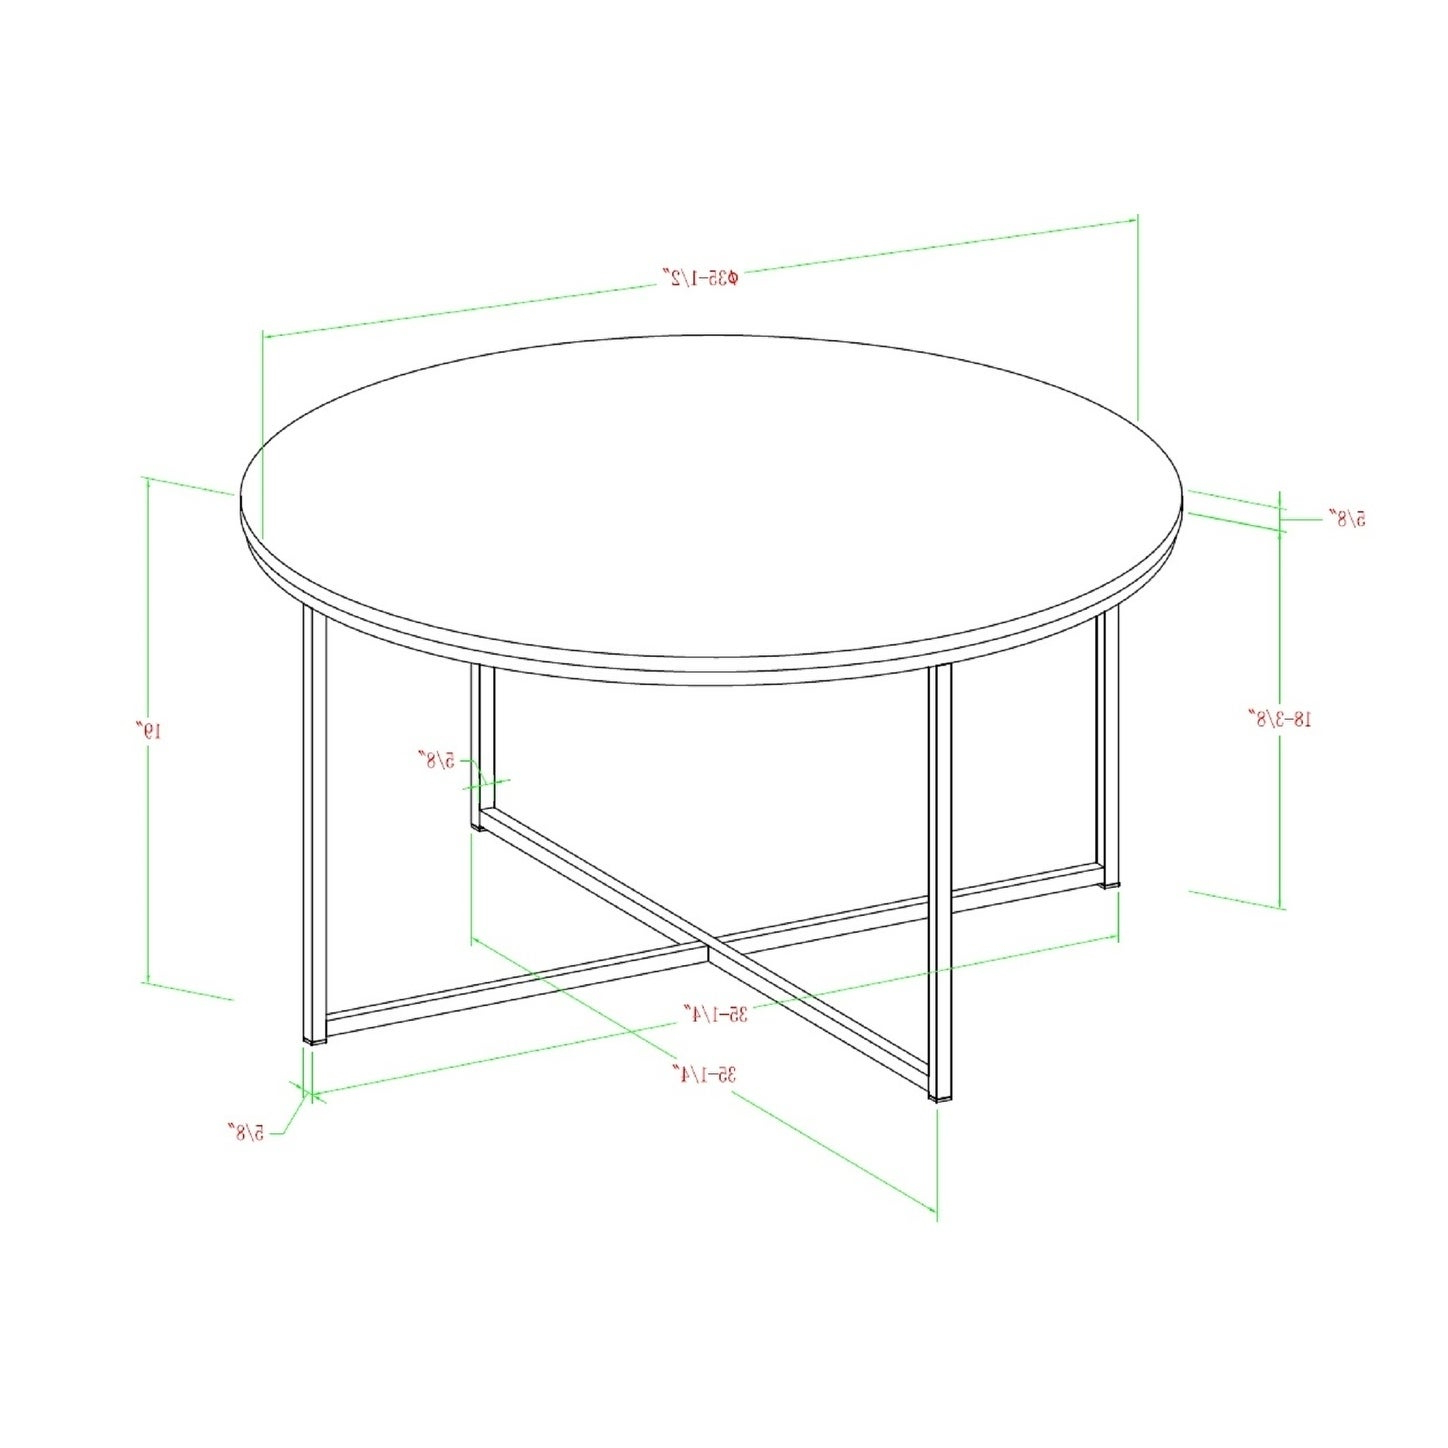 Silver Orchid Ipsen 36 Inch Round Coffee Table With X Base – 36 X 36 X 19h Regarding Newest Silver Orchid Ipsen Round Coffee Tables With X Base (View 8 of 20)